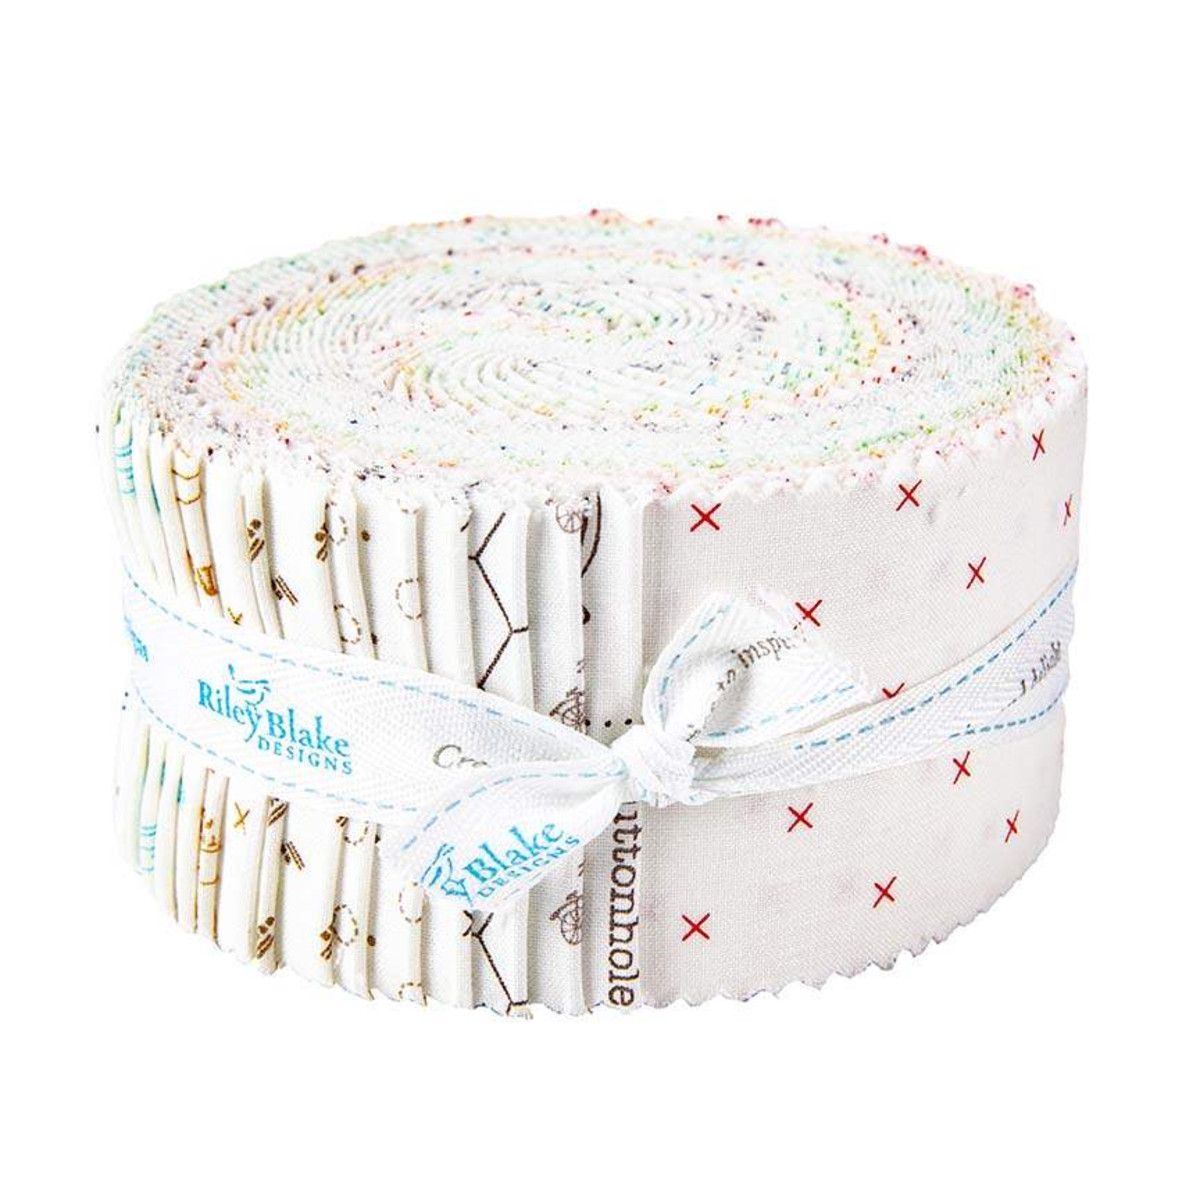 Riley Blake Jelly Roll - Bee Basics WHITE by Lori Holt